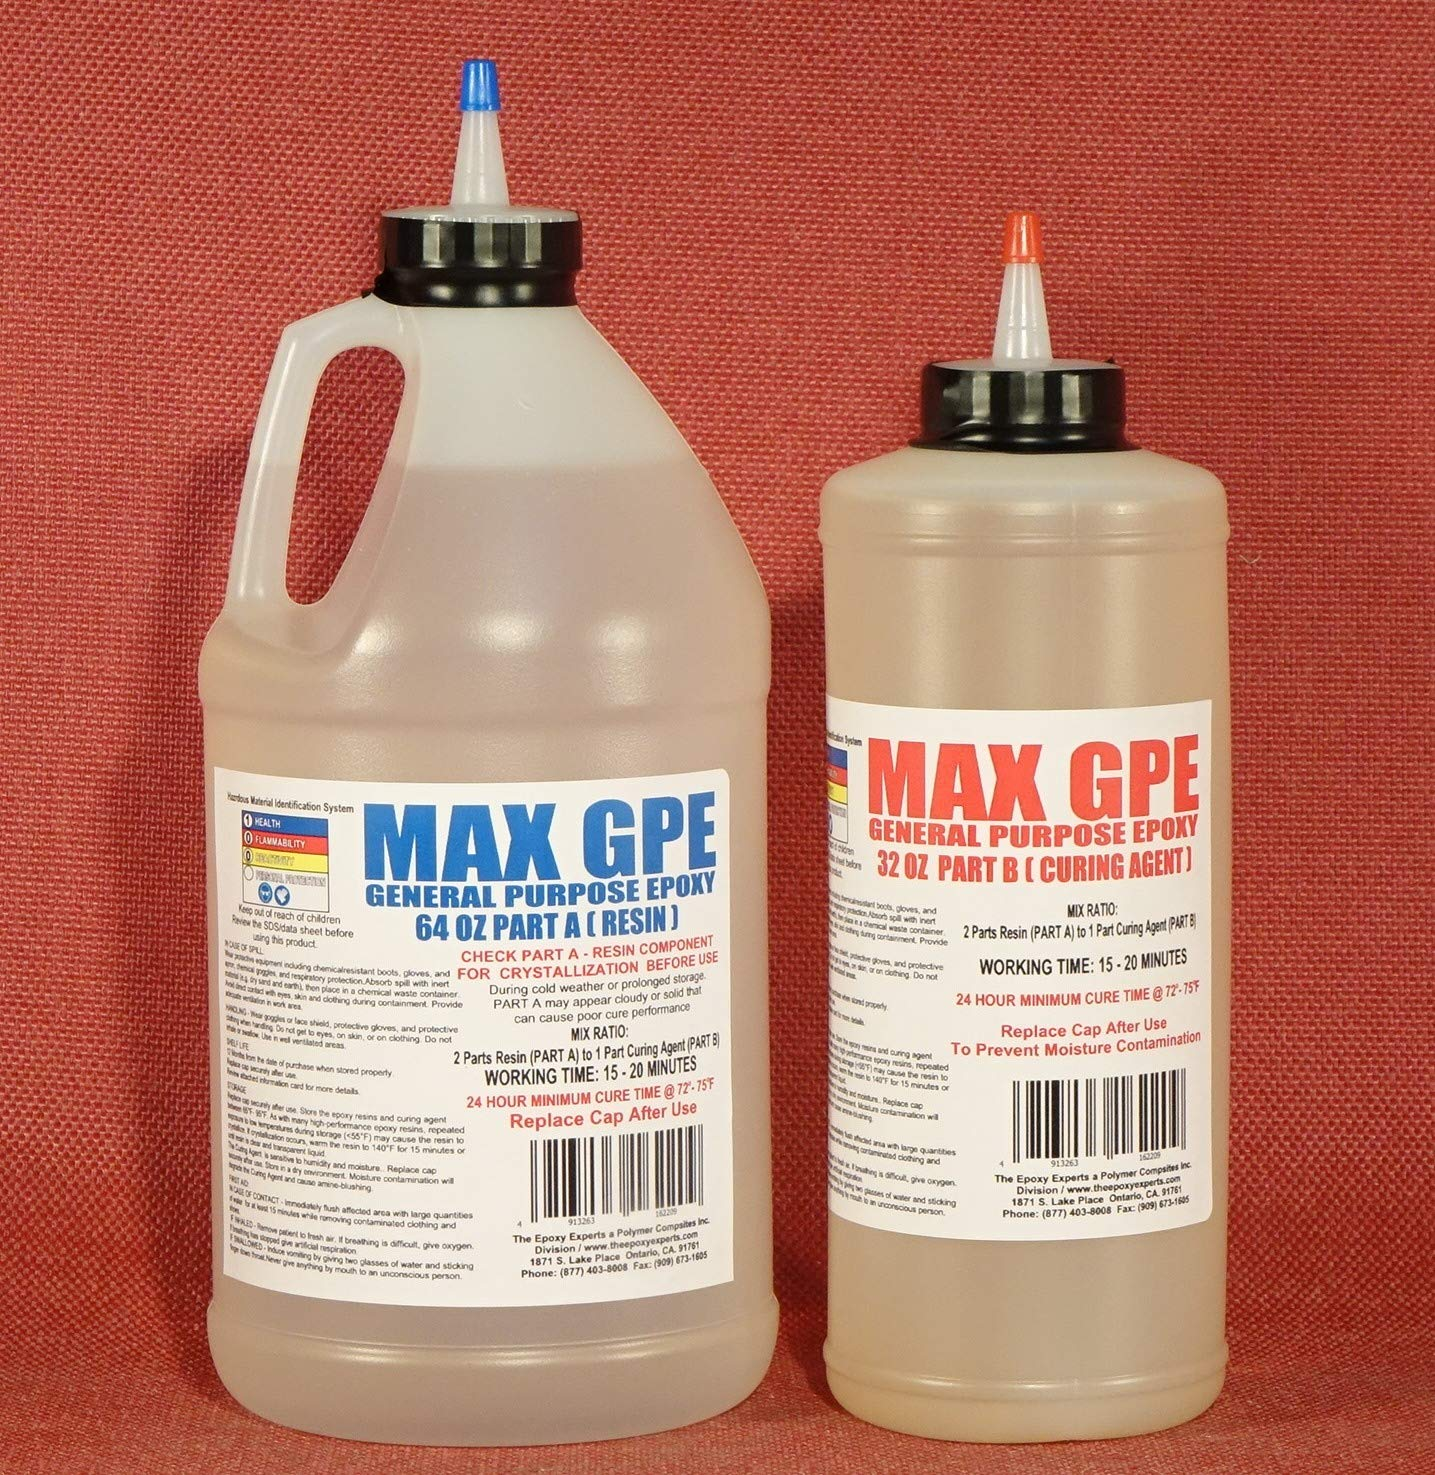 MAX GPE -General Purpose Grade Epoxy Resin System - 3/4 Gallon Kit - RV Repair Panel Injectable Adhesive, Wood Sealing and Waterproofing Resin System, Low Viscosity, Long Working Time